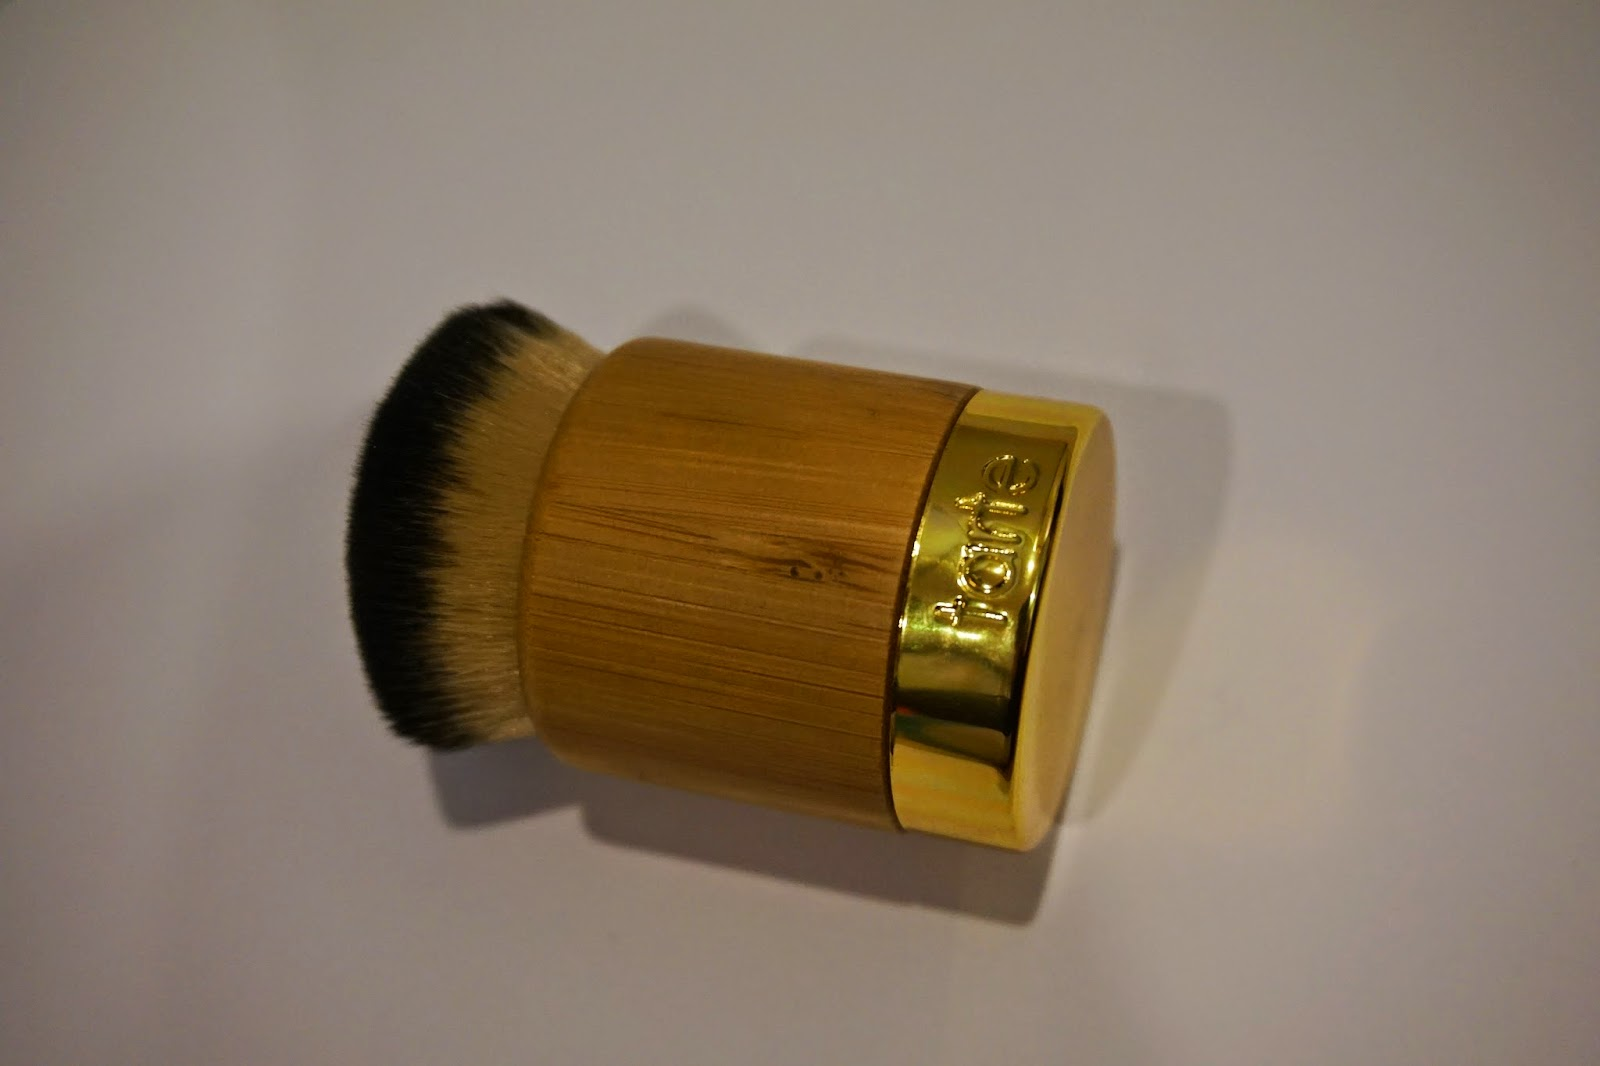 Sephora Haul and mini reviews - Tarte Airbuki Brush - Dusty Foxes Beauty Blog